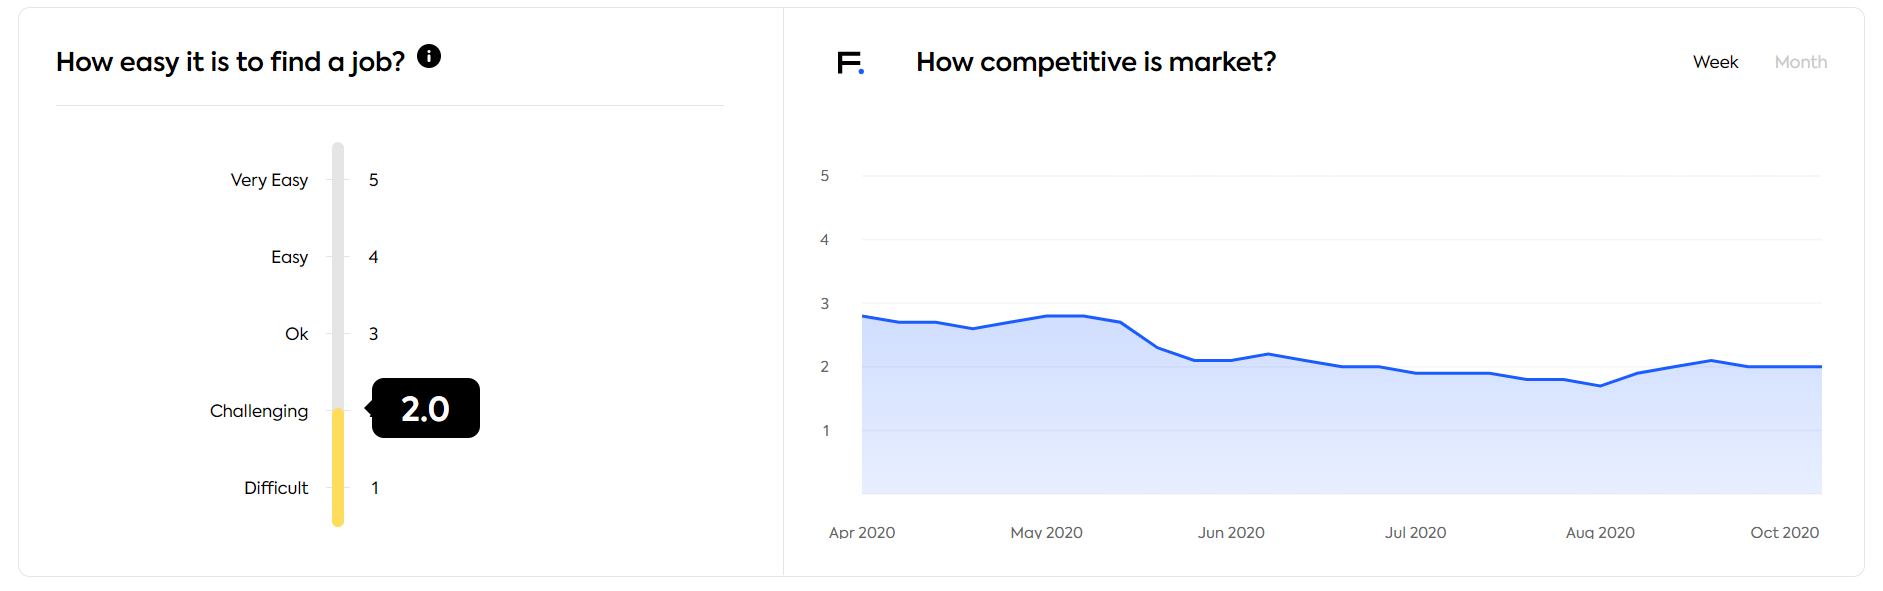 competitiveness on the global scale